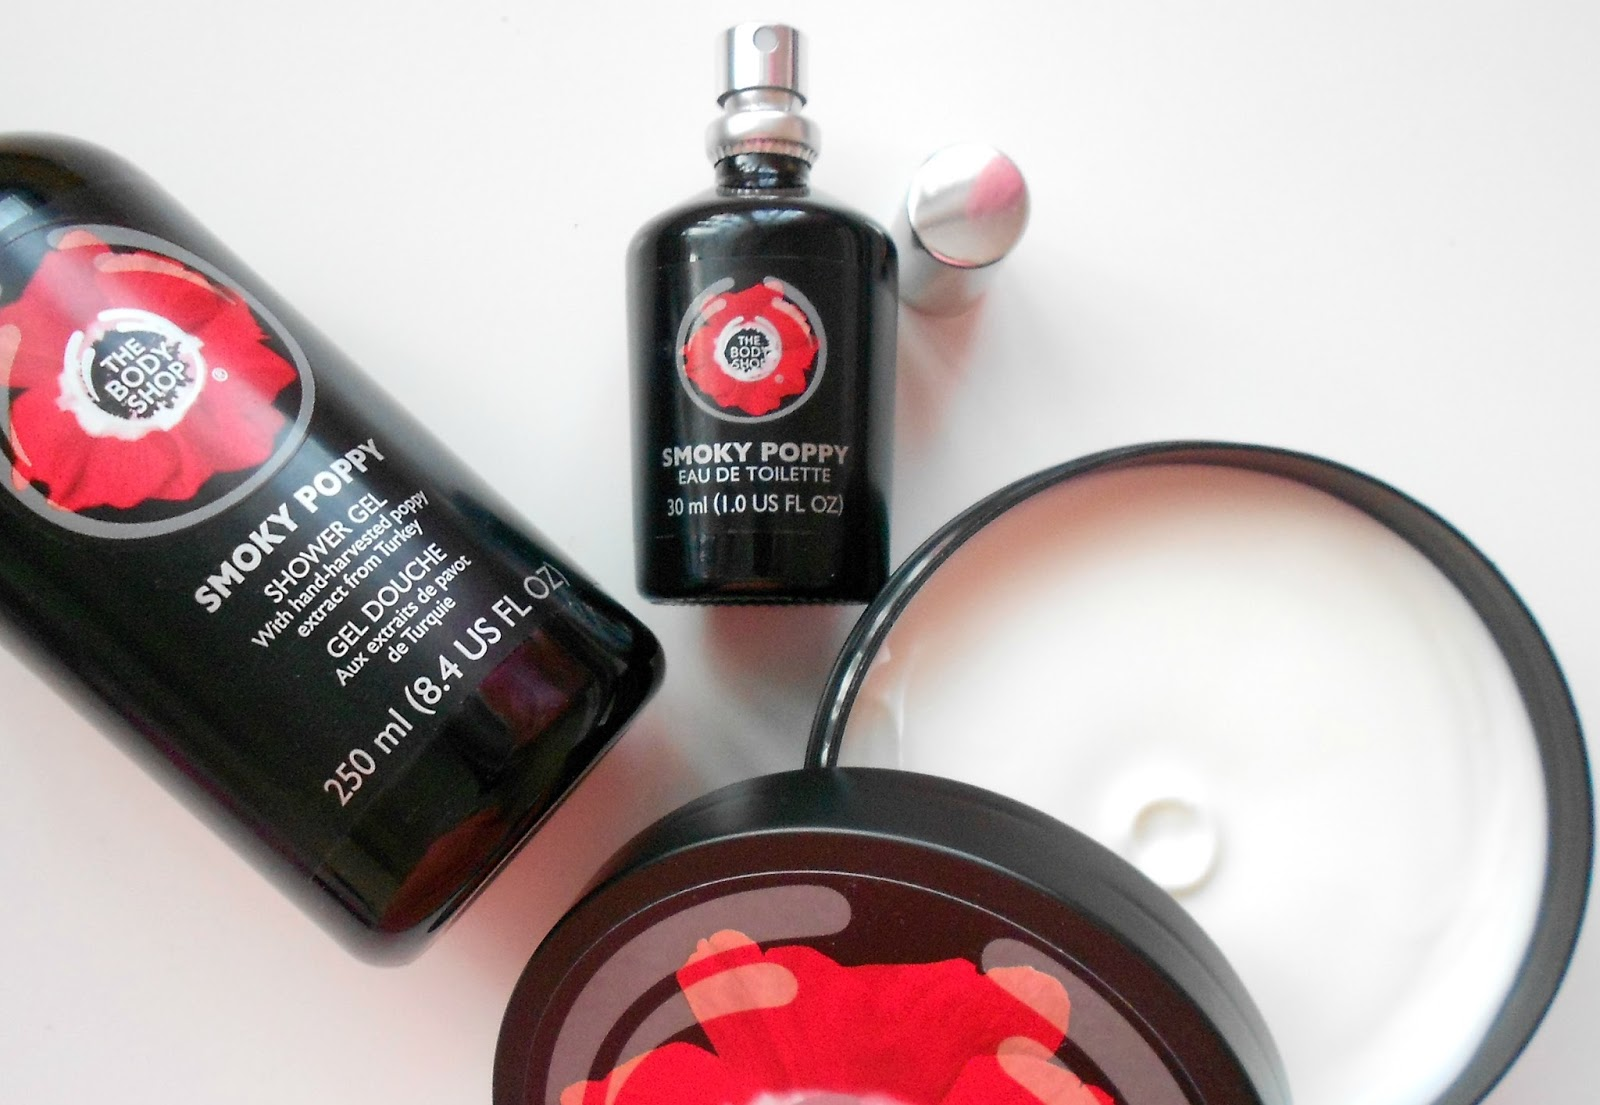 smoky poppy bodyshop review